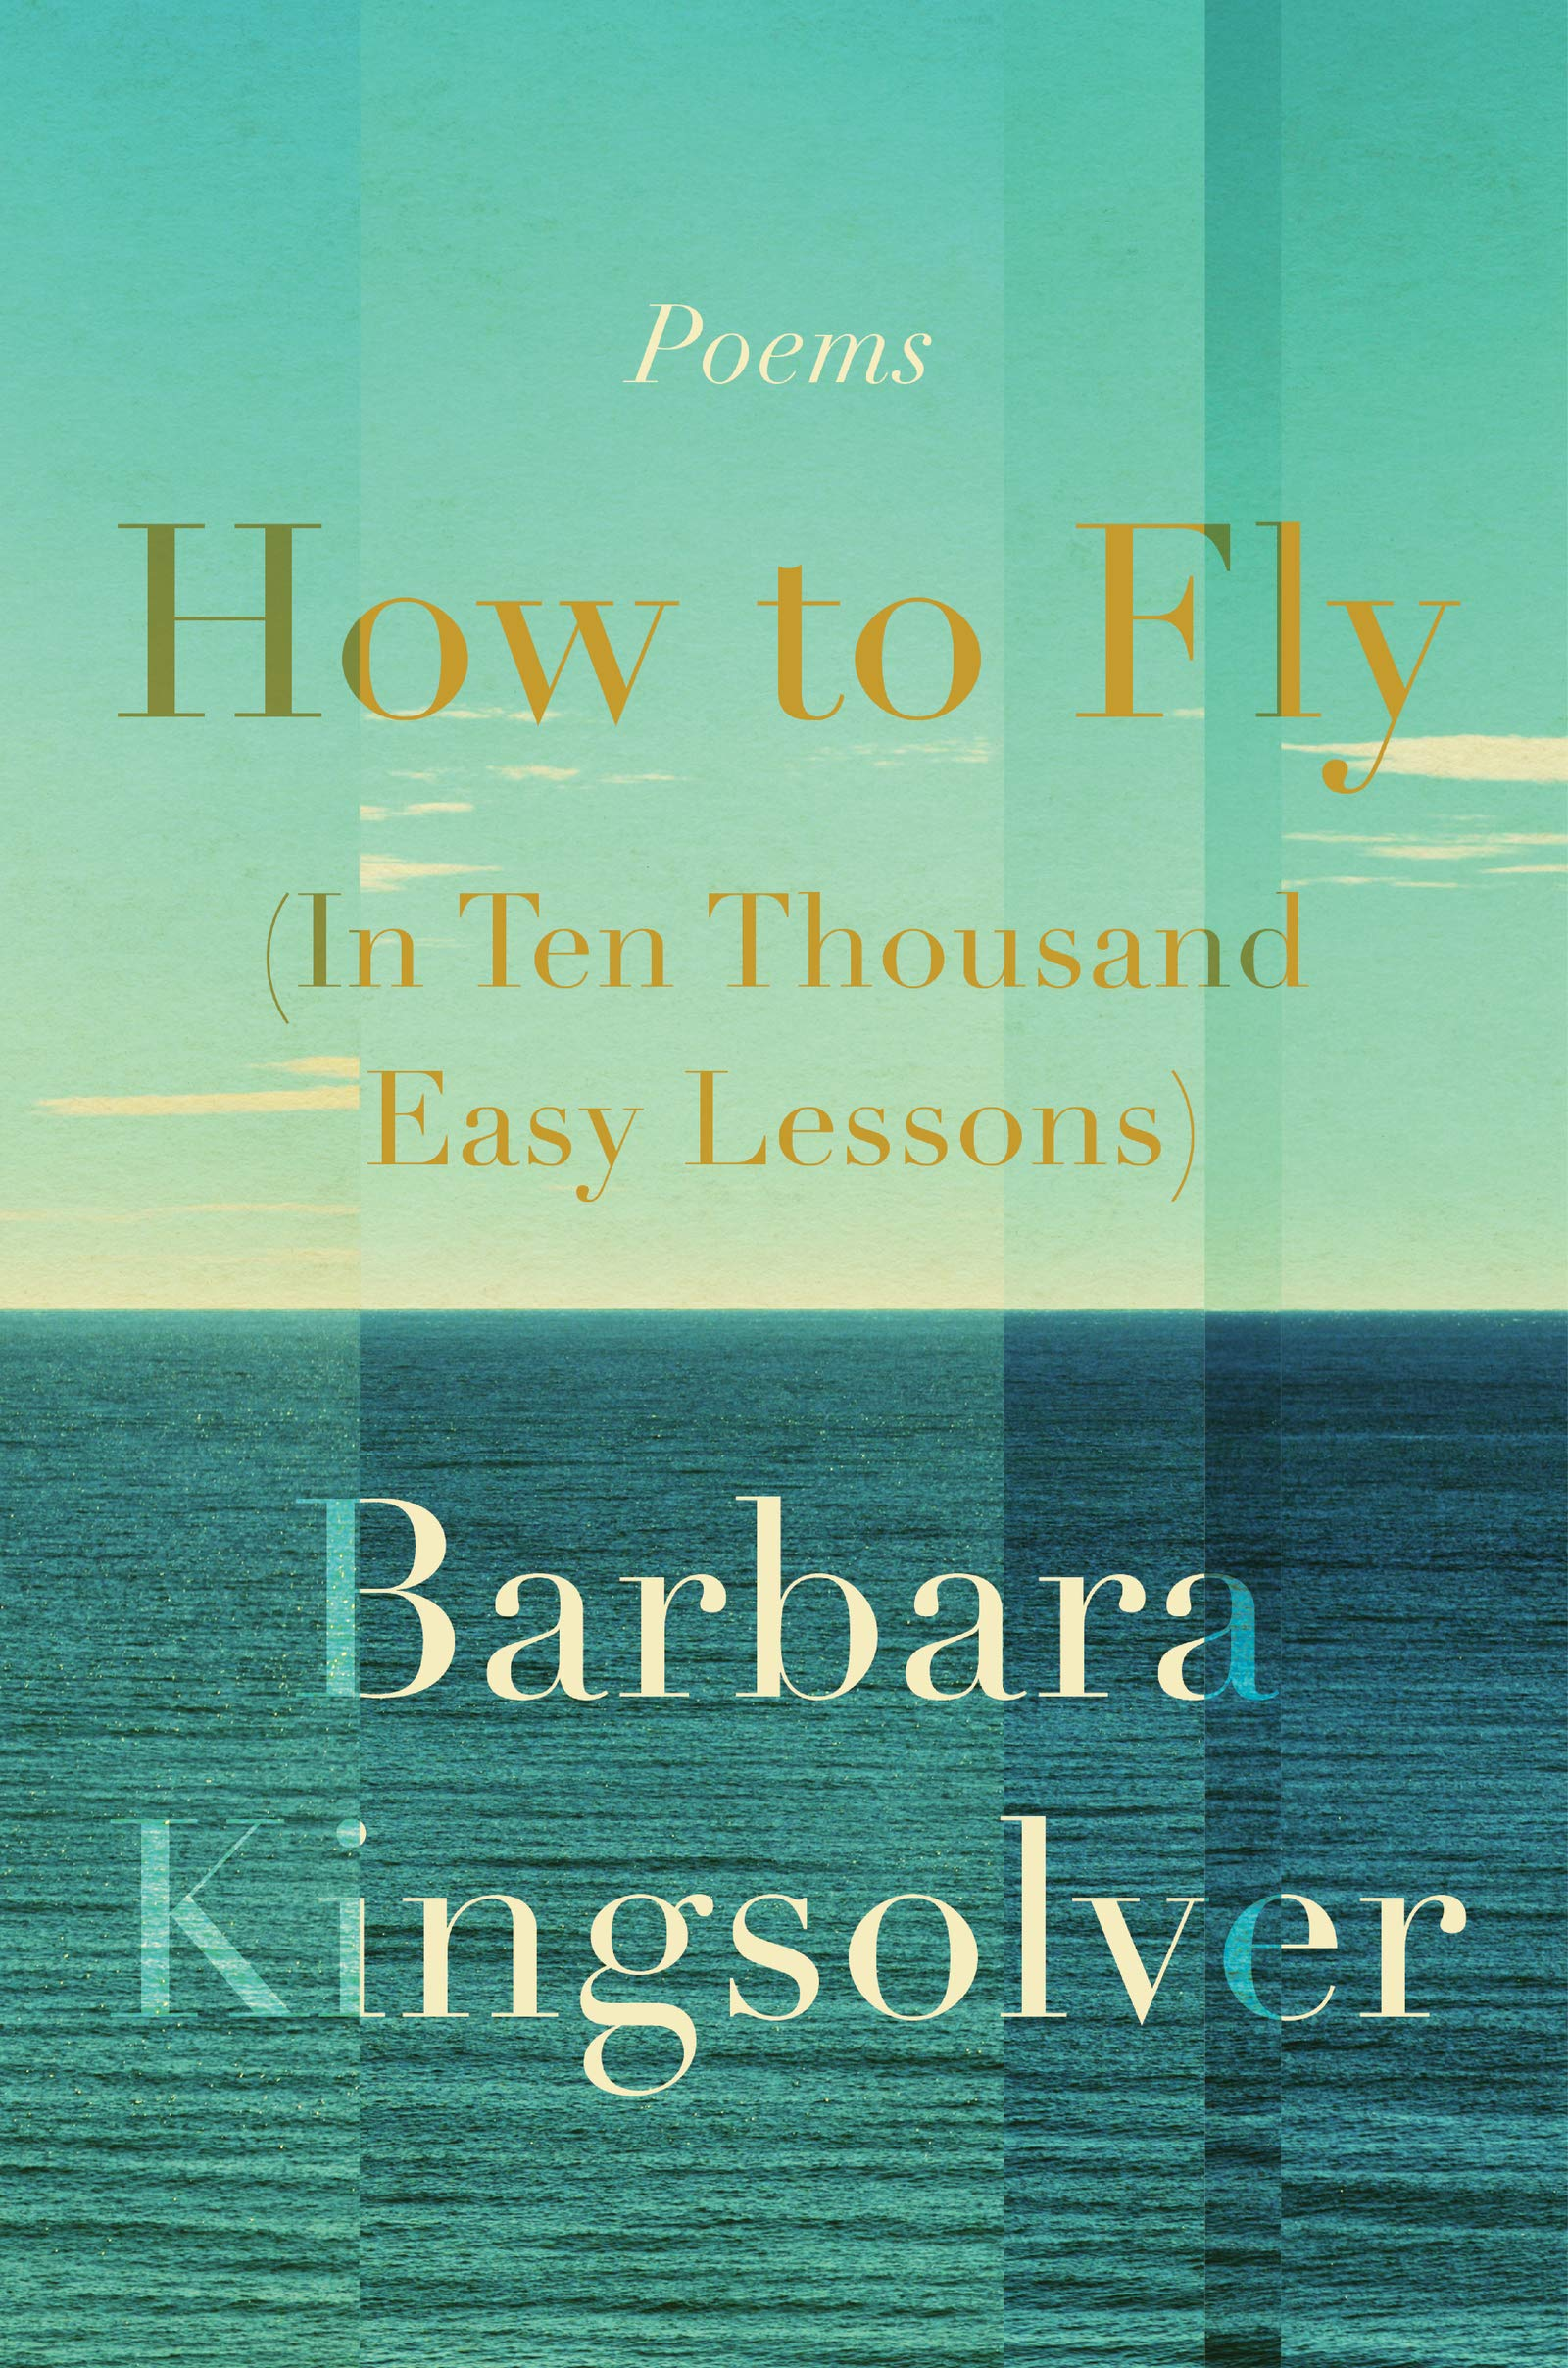 How to Fly (In Ten Thousand Easy Lessons): Poetry